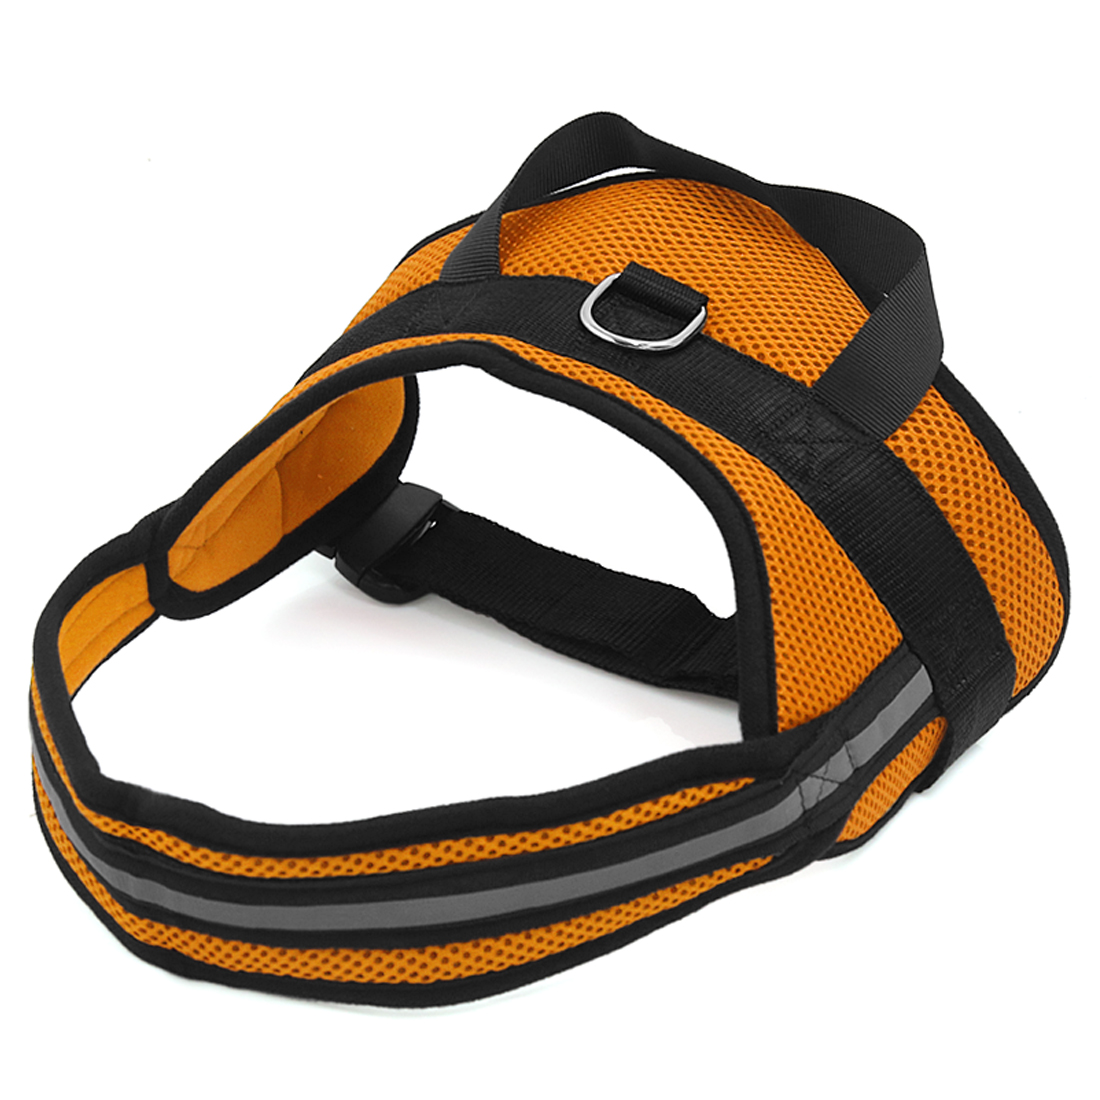 Big Dog Soft Mesh Reflective No Pull Harness Adjustable Large Pet Walk Vest Safe Control Collar Orange XL